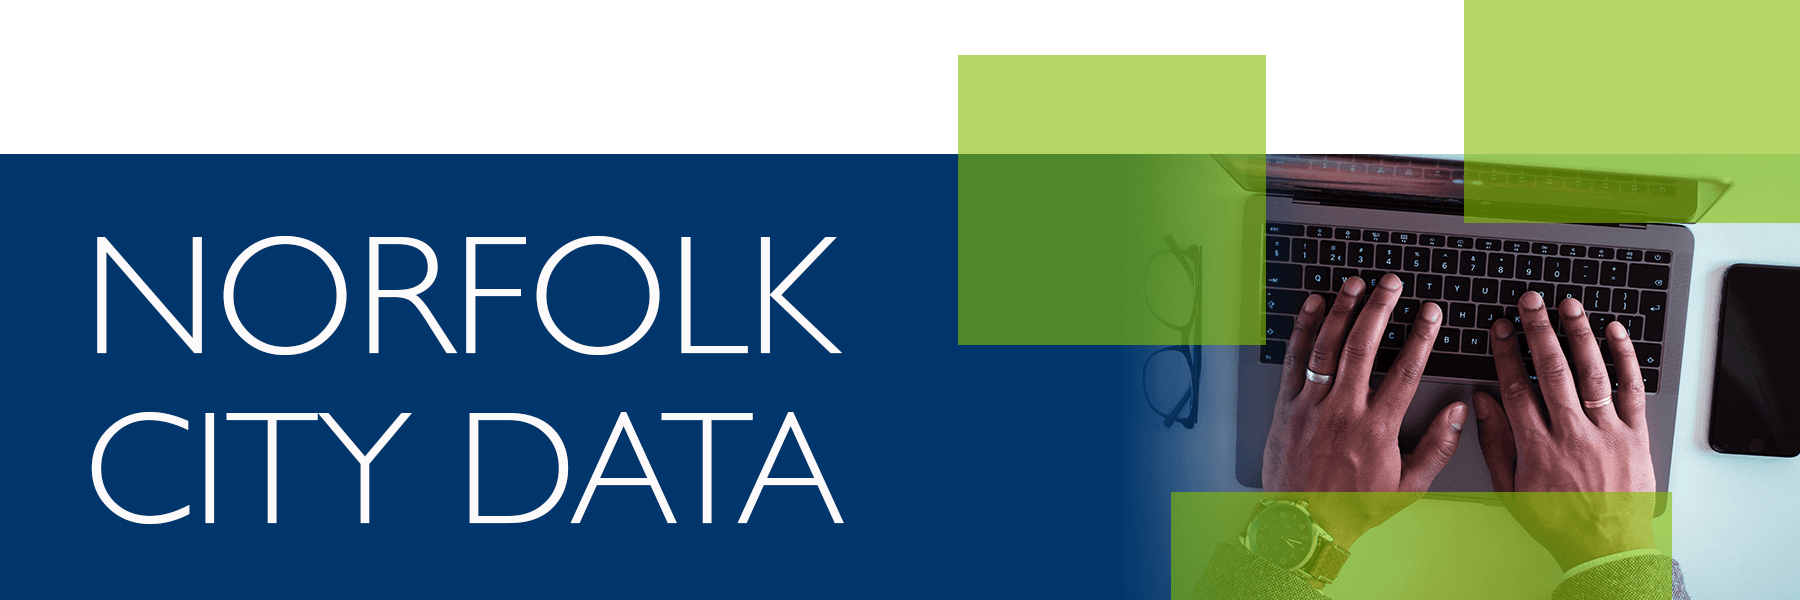 Norfolk City Data